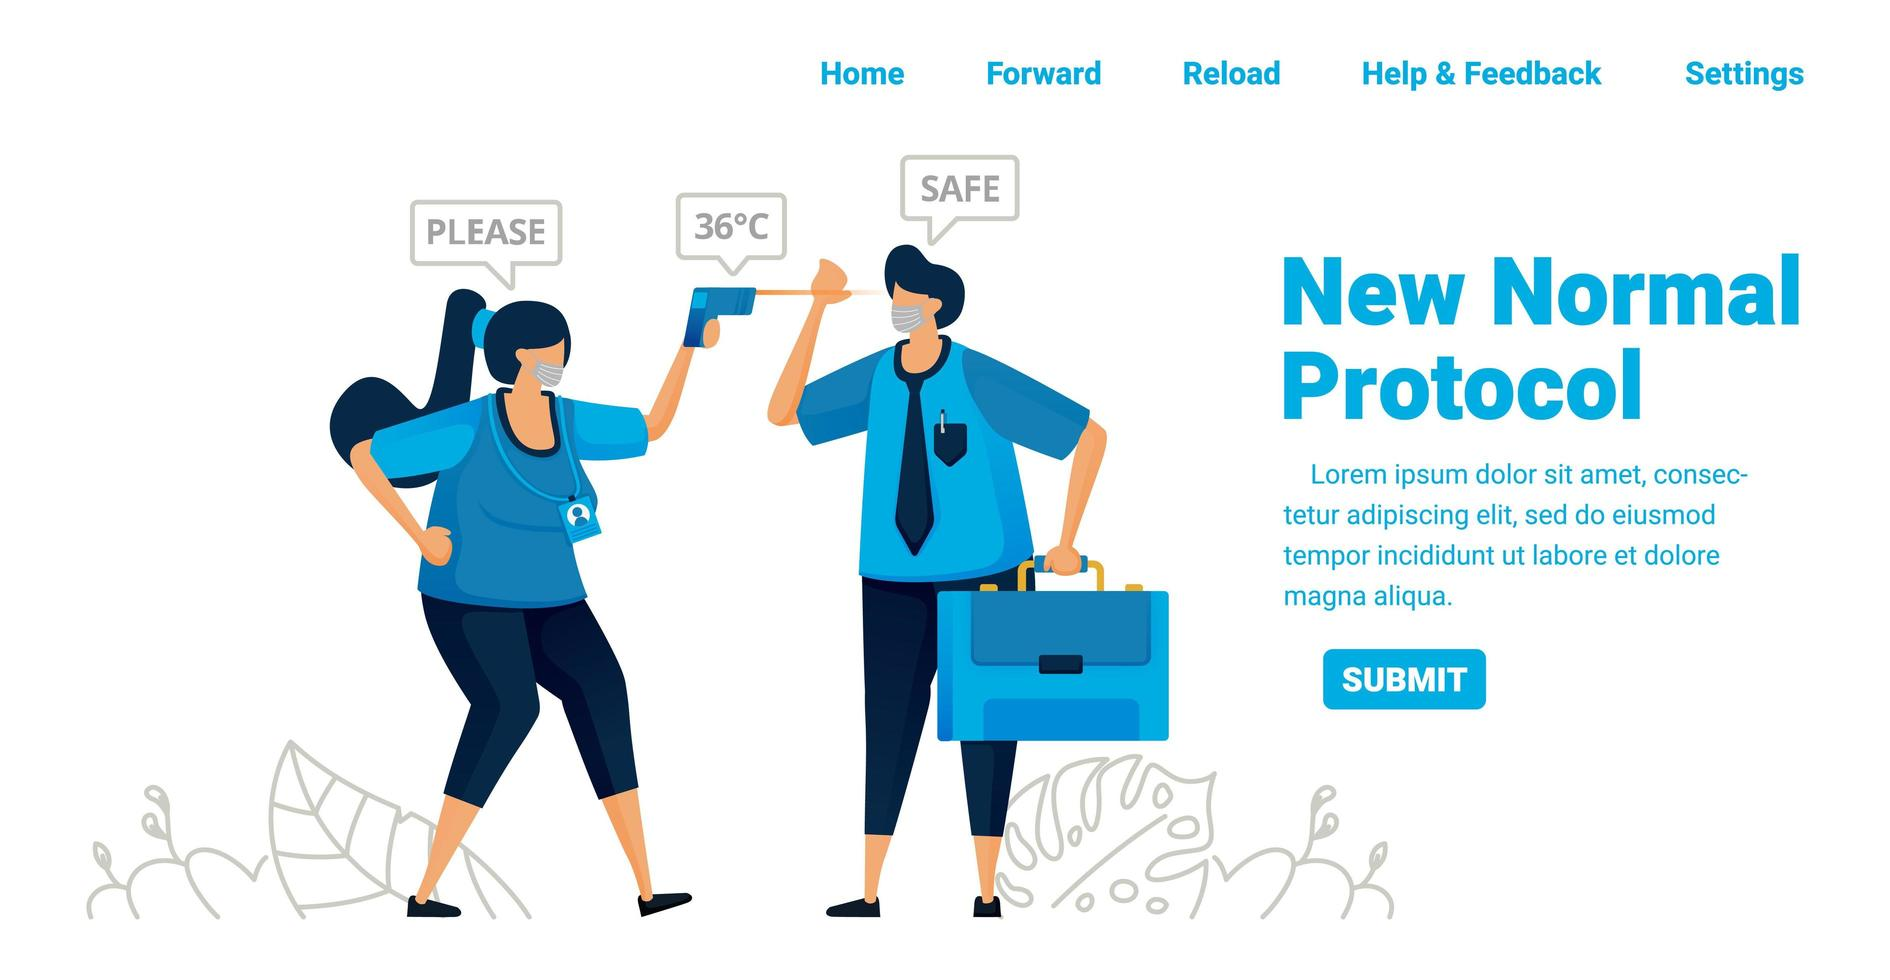 New normal pandemic protocol for work and travel. Control body temperature in offices, airports and health facilities. Illustration design of landing page, website, mobile apps, poster, flyer, banner vector